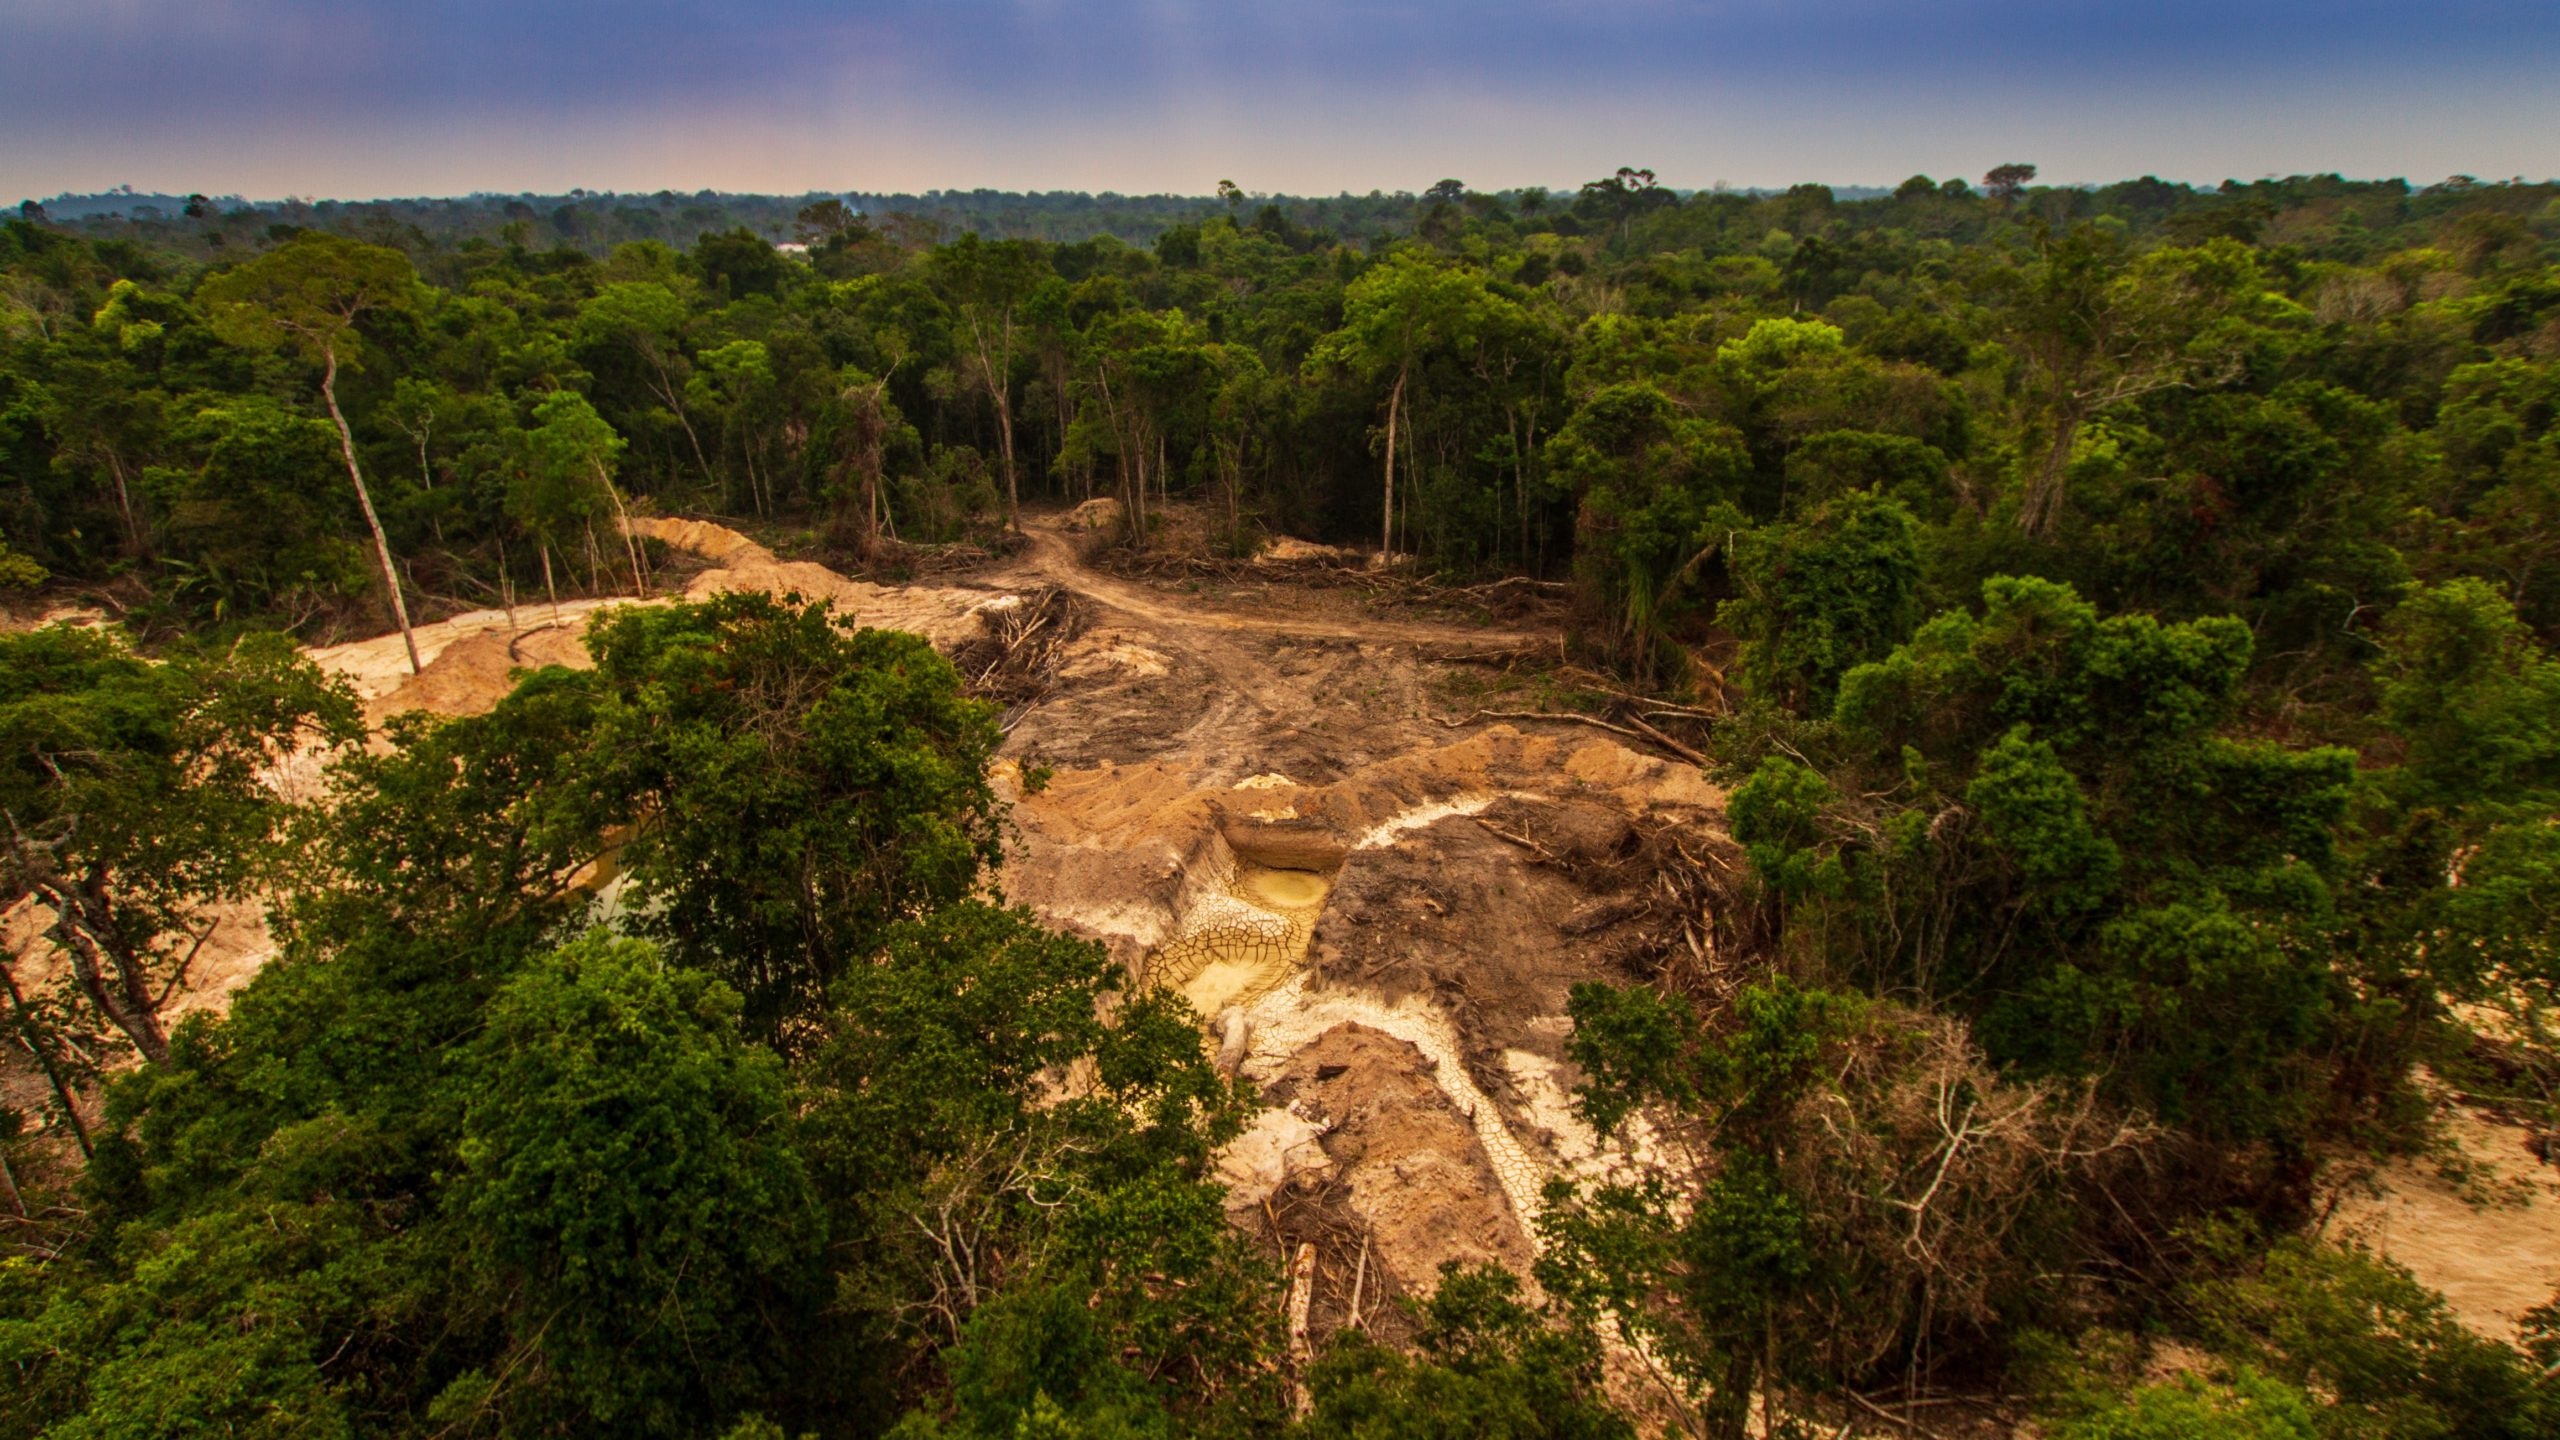 Illegal gold represents 17% of Brazil's exports - study